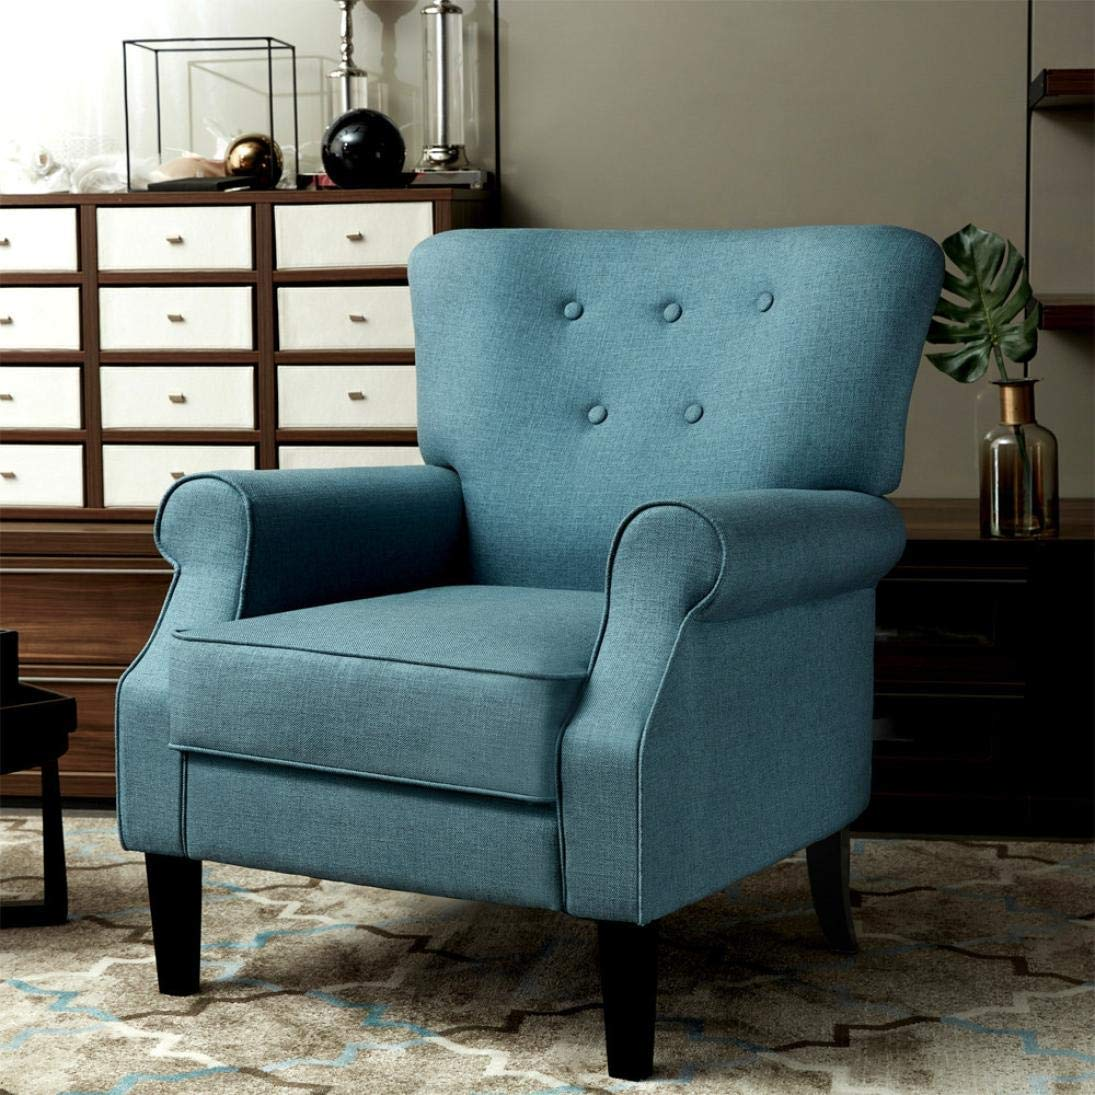 Simple Solid Color Modern Sofa Chair,Basde and Soft Modern Sofa Chair Perfect for Living Room,31.927.221.3inch (Bule)